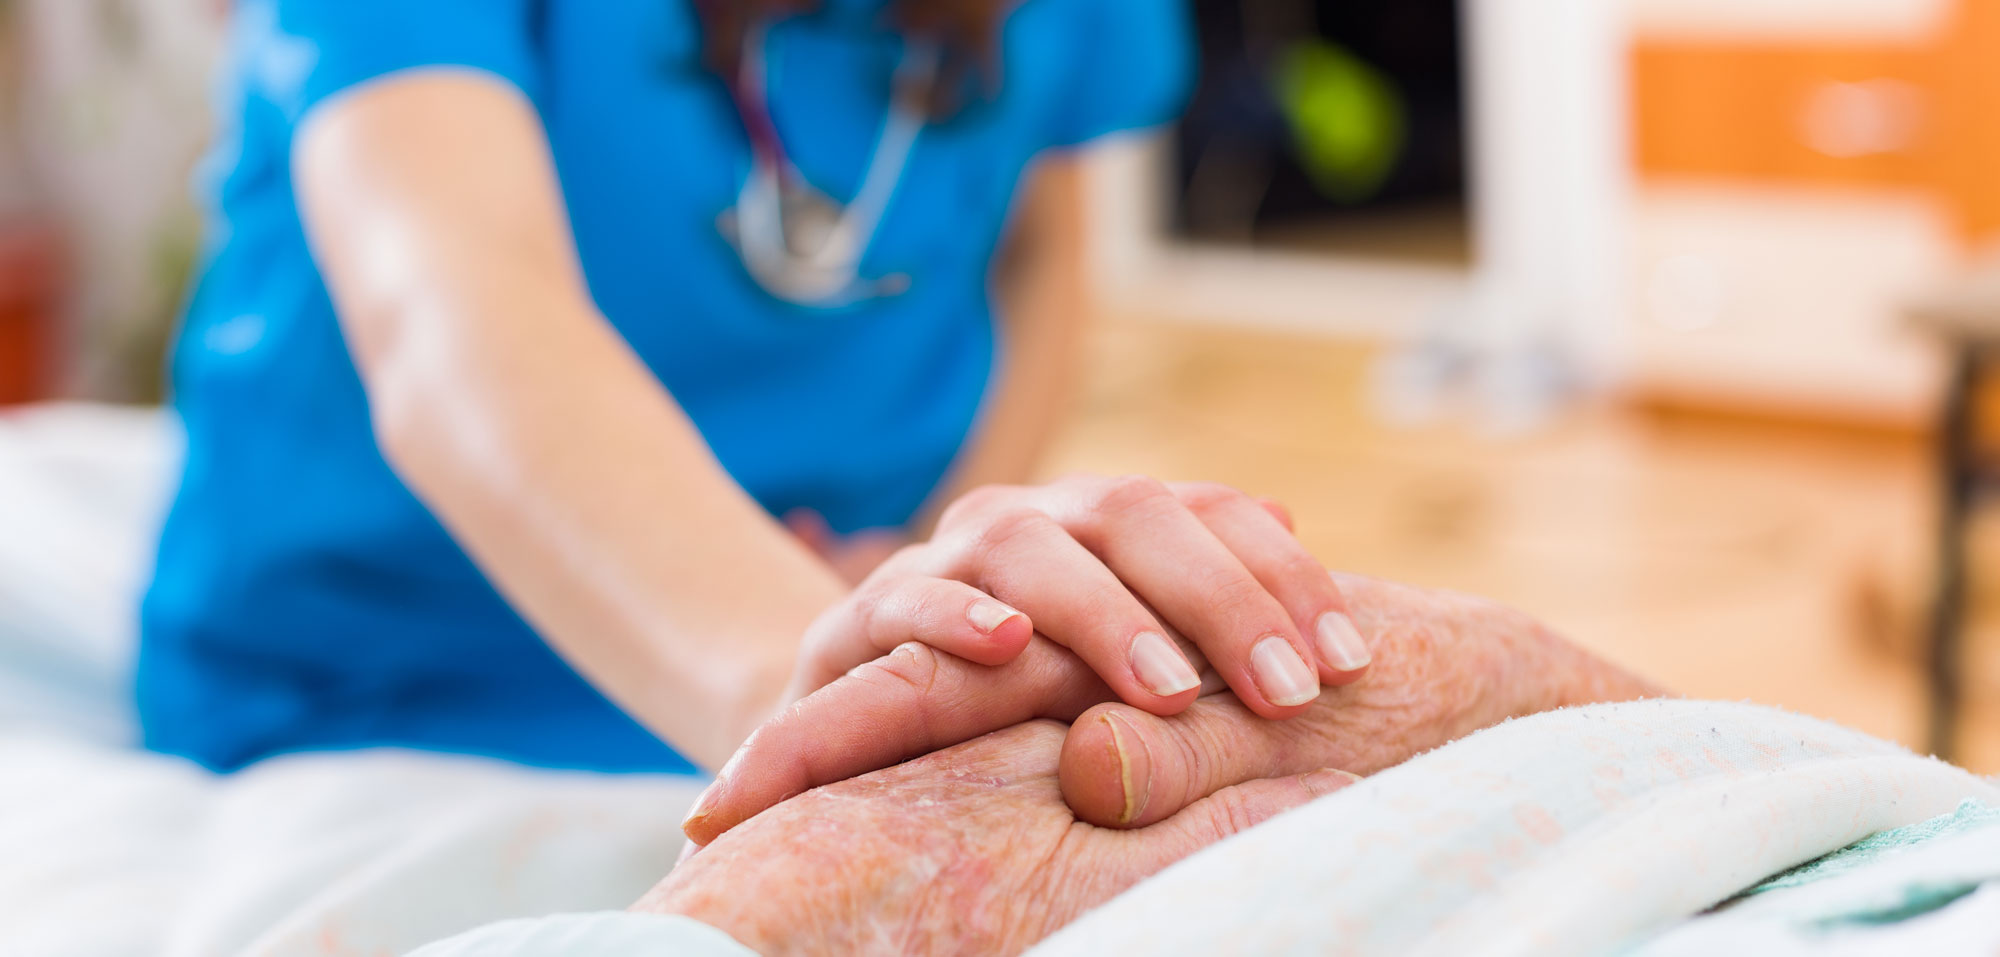 Nurse holds the hand of an elderly woman in a hospital setting.